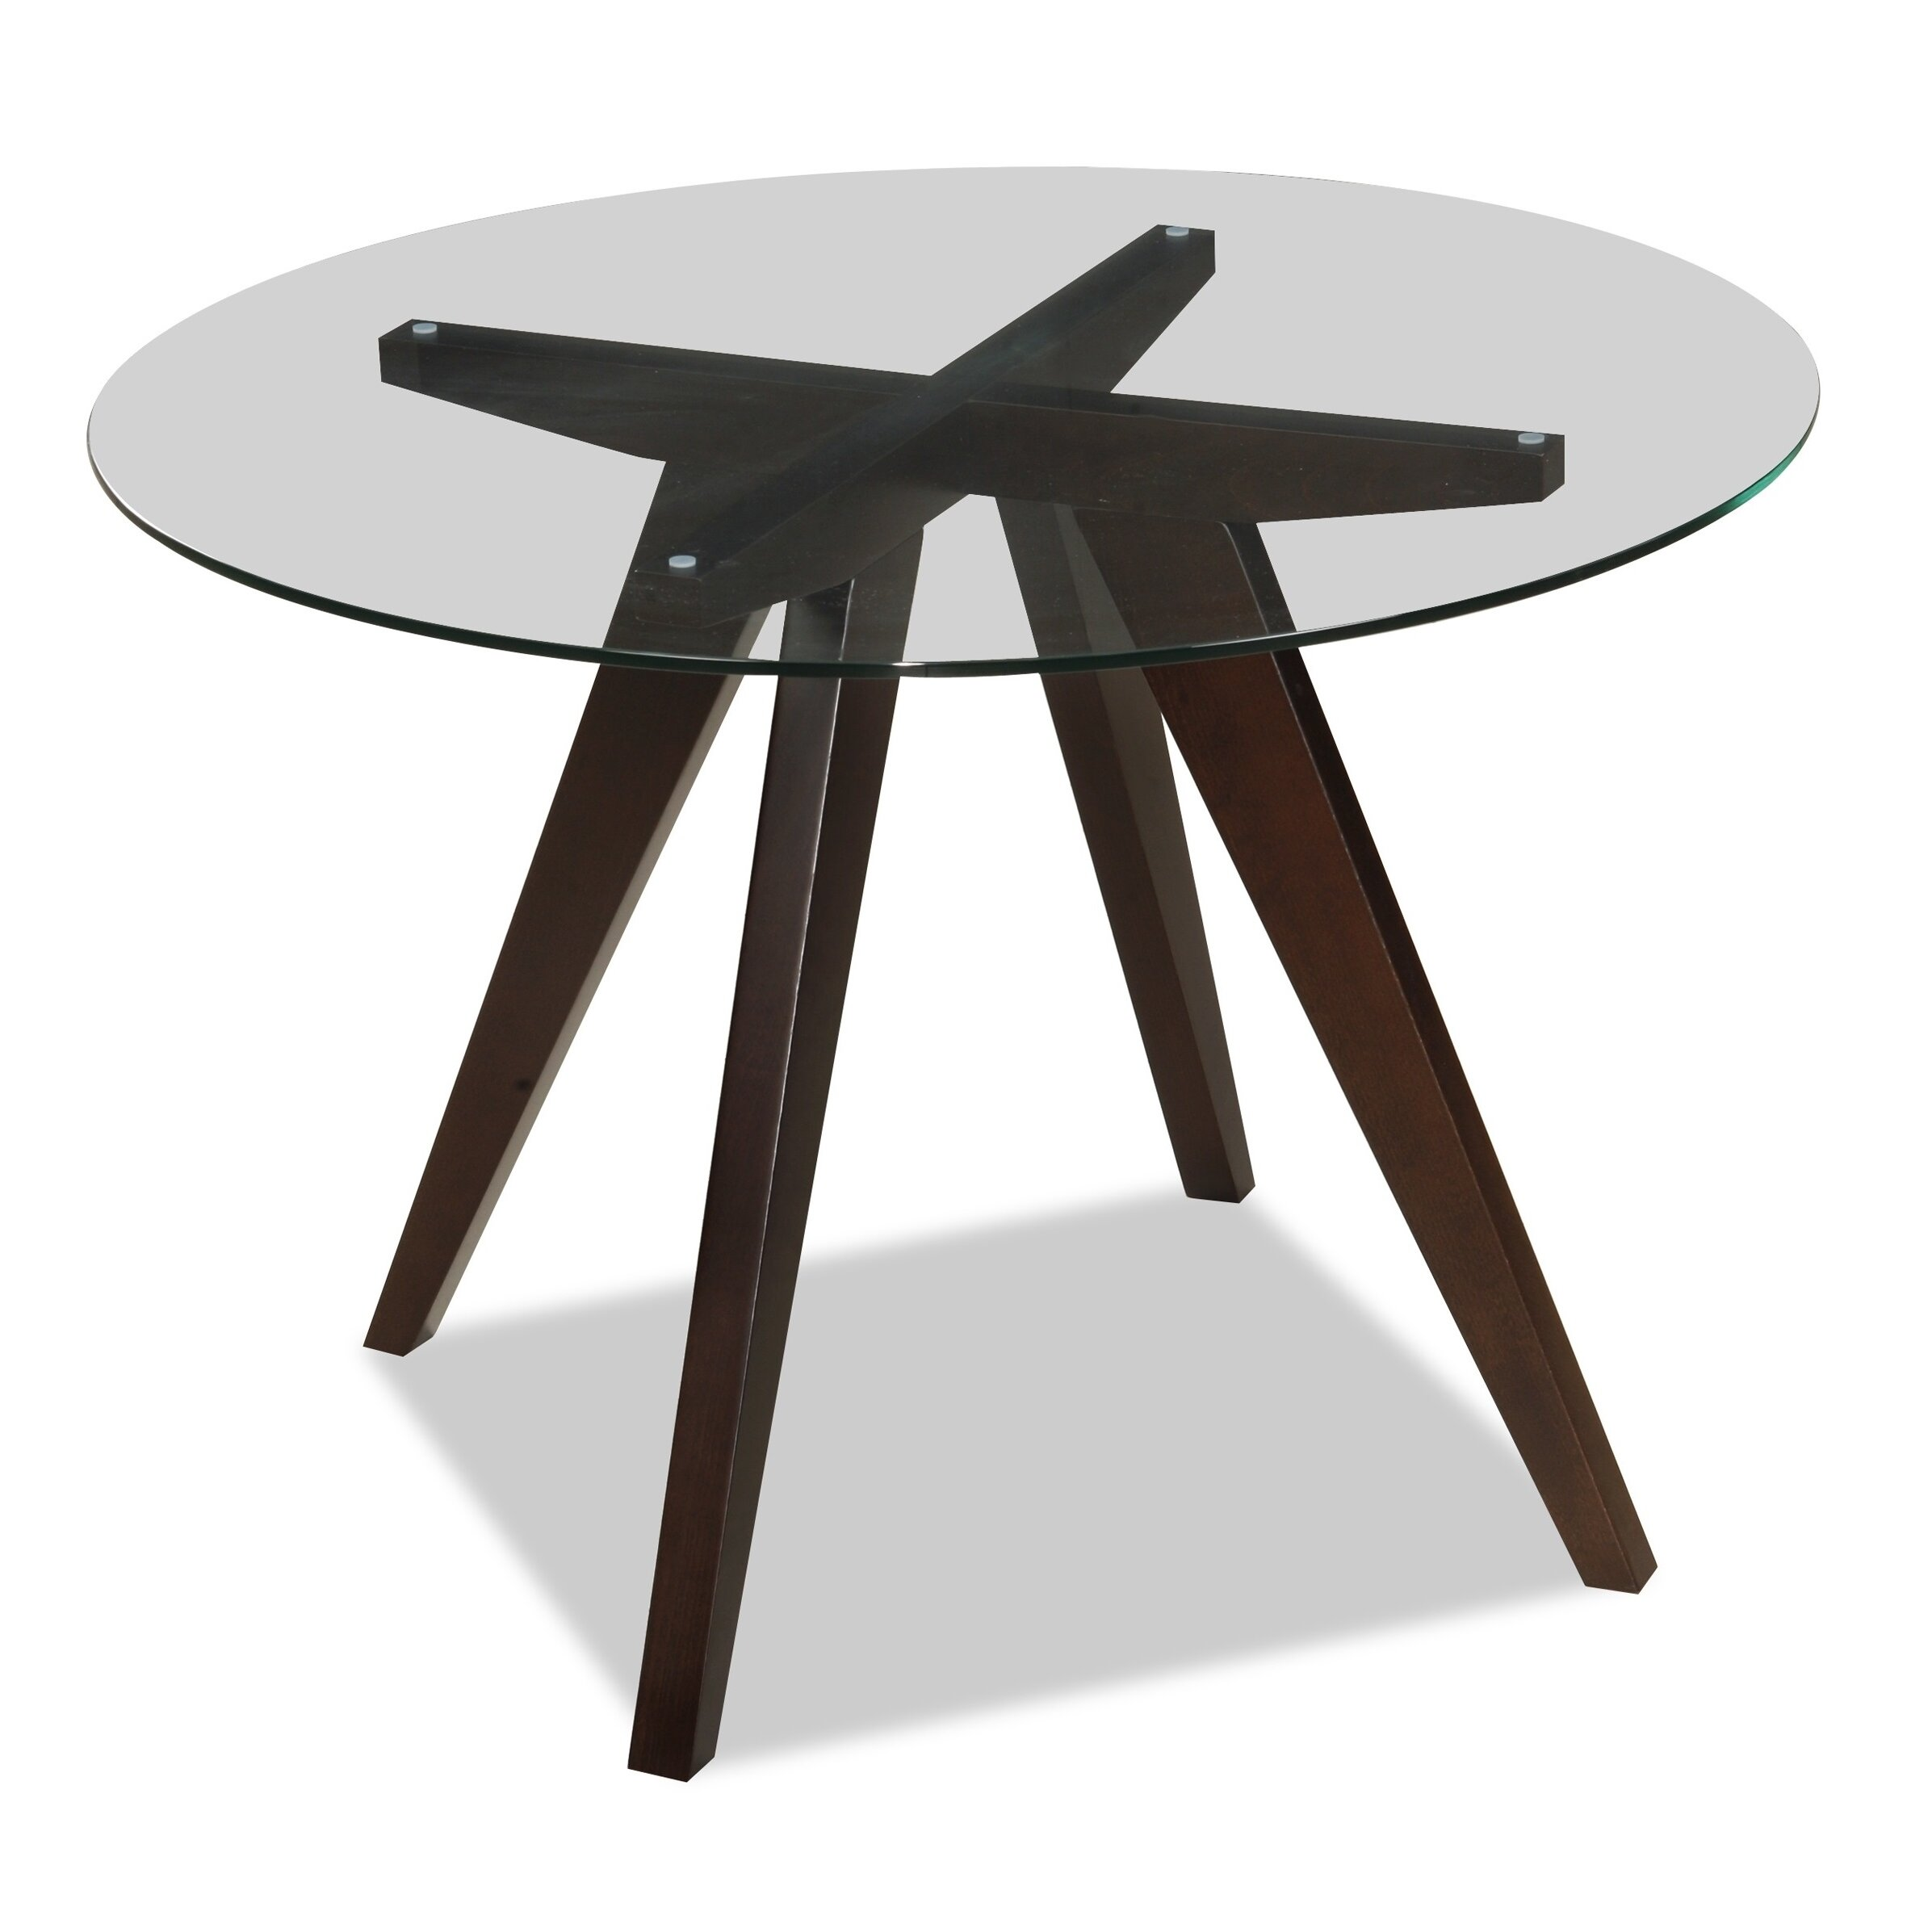 Mauna Tempered Glass Top Round Dining Table Set: Homegear Caleope Dining Table